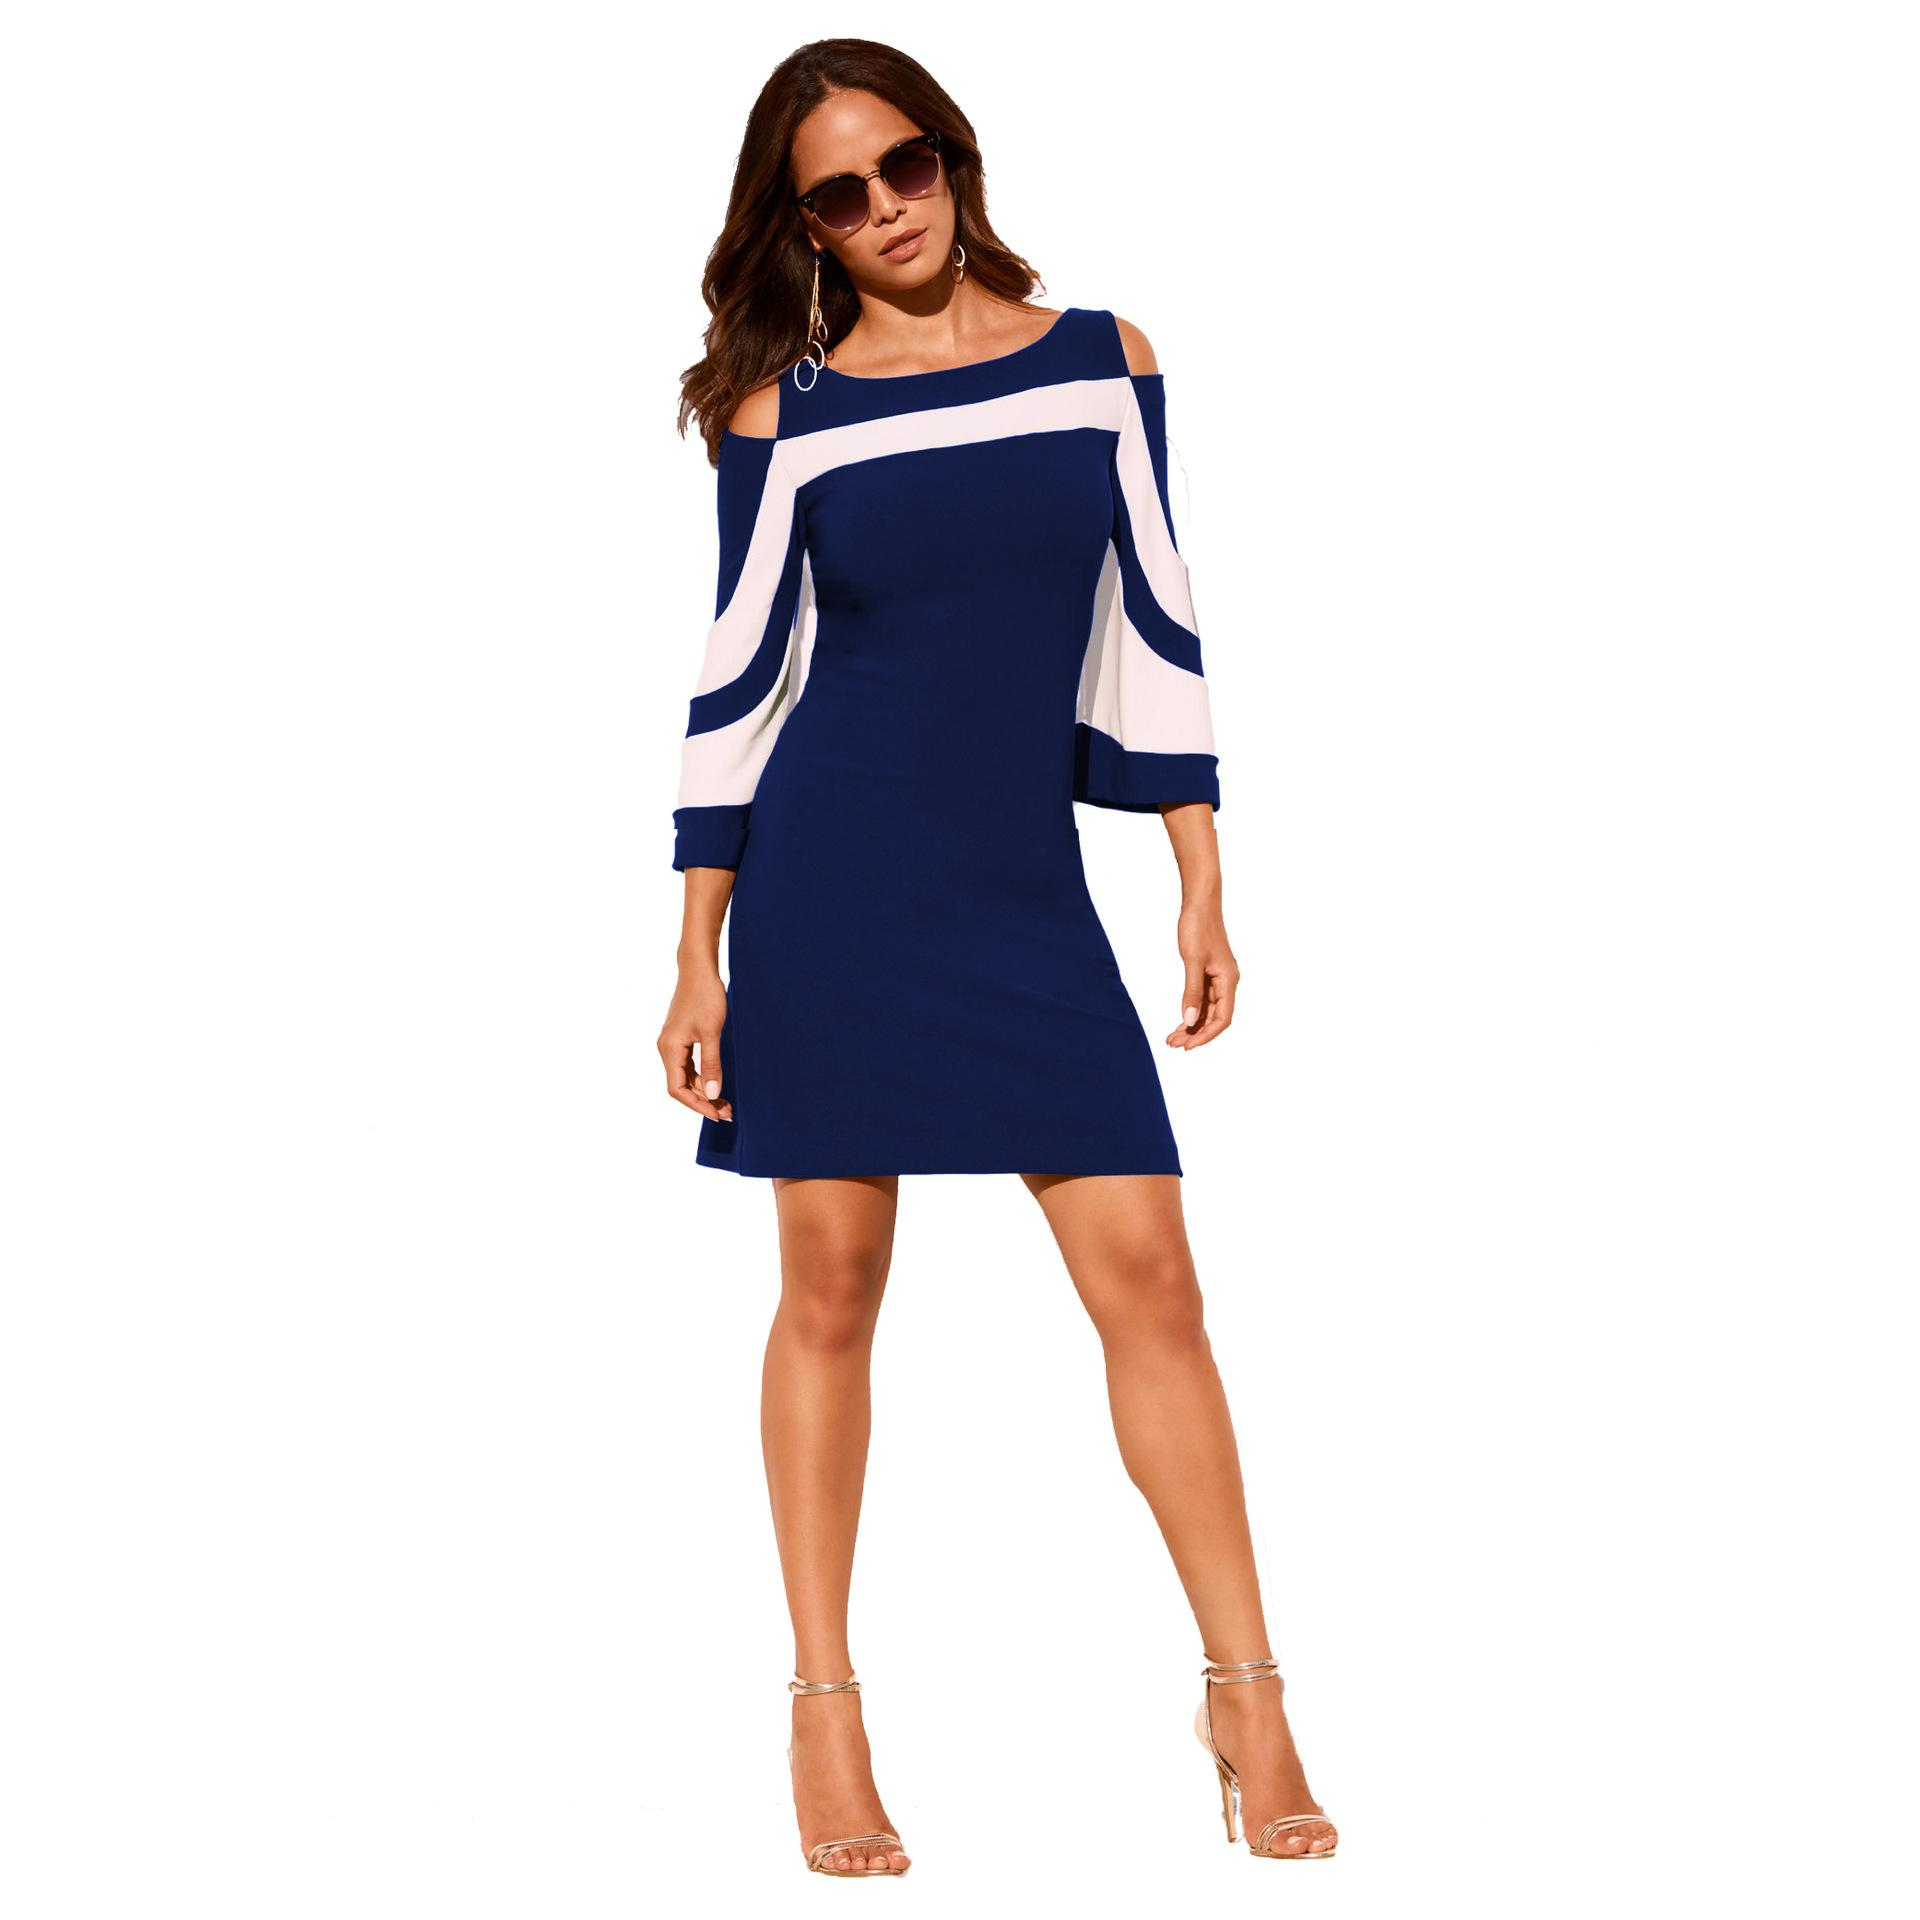 Women s Dress 2019 New Arrival Hot Fashion Woman Casual Square-neck ... c338ab769ee4